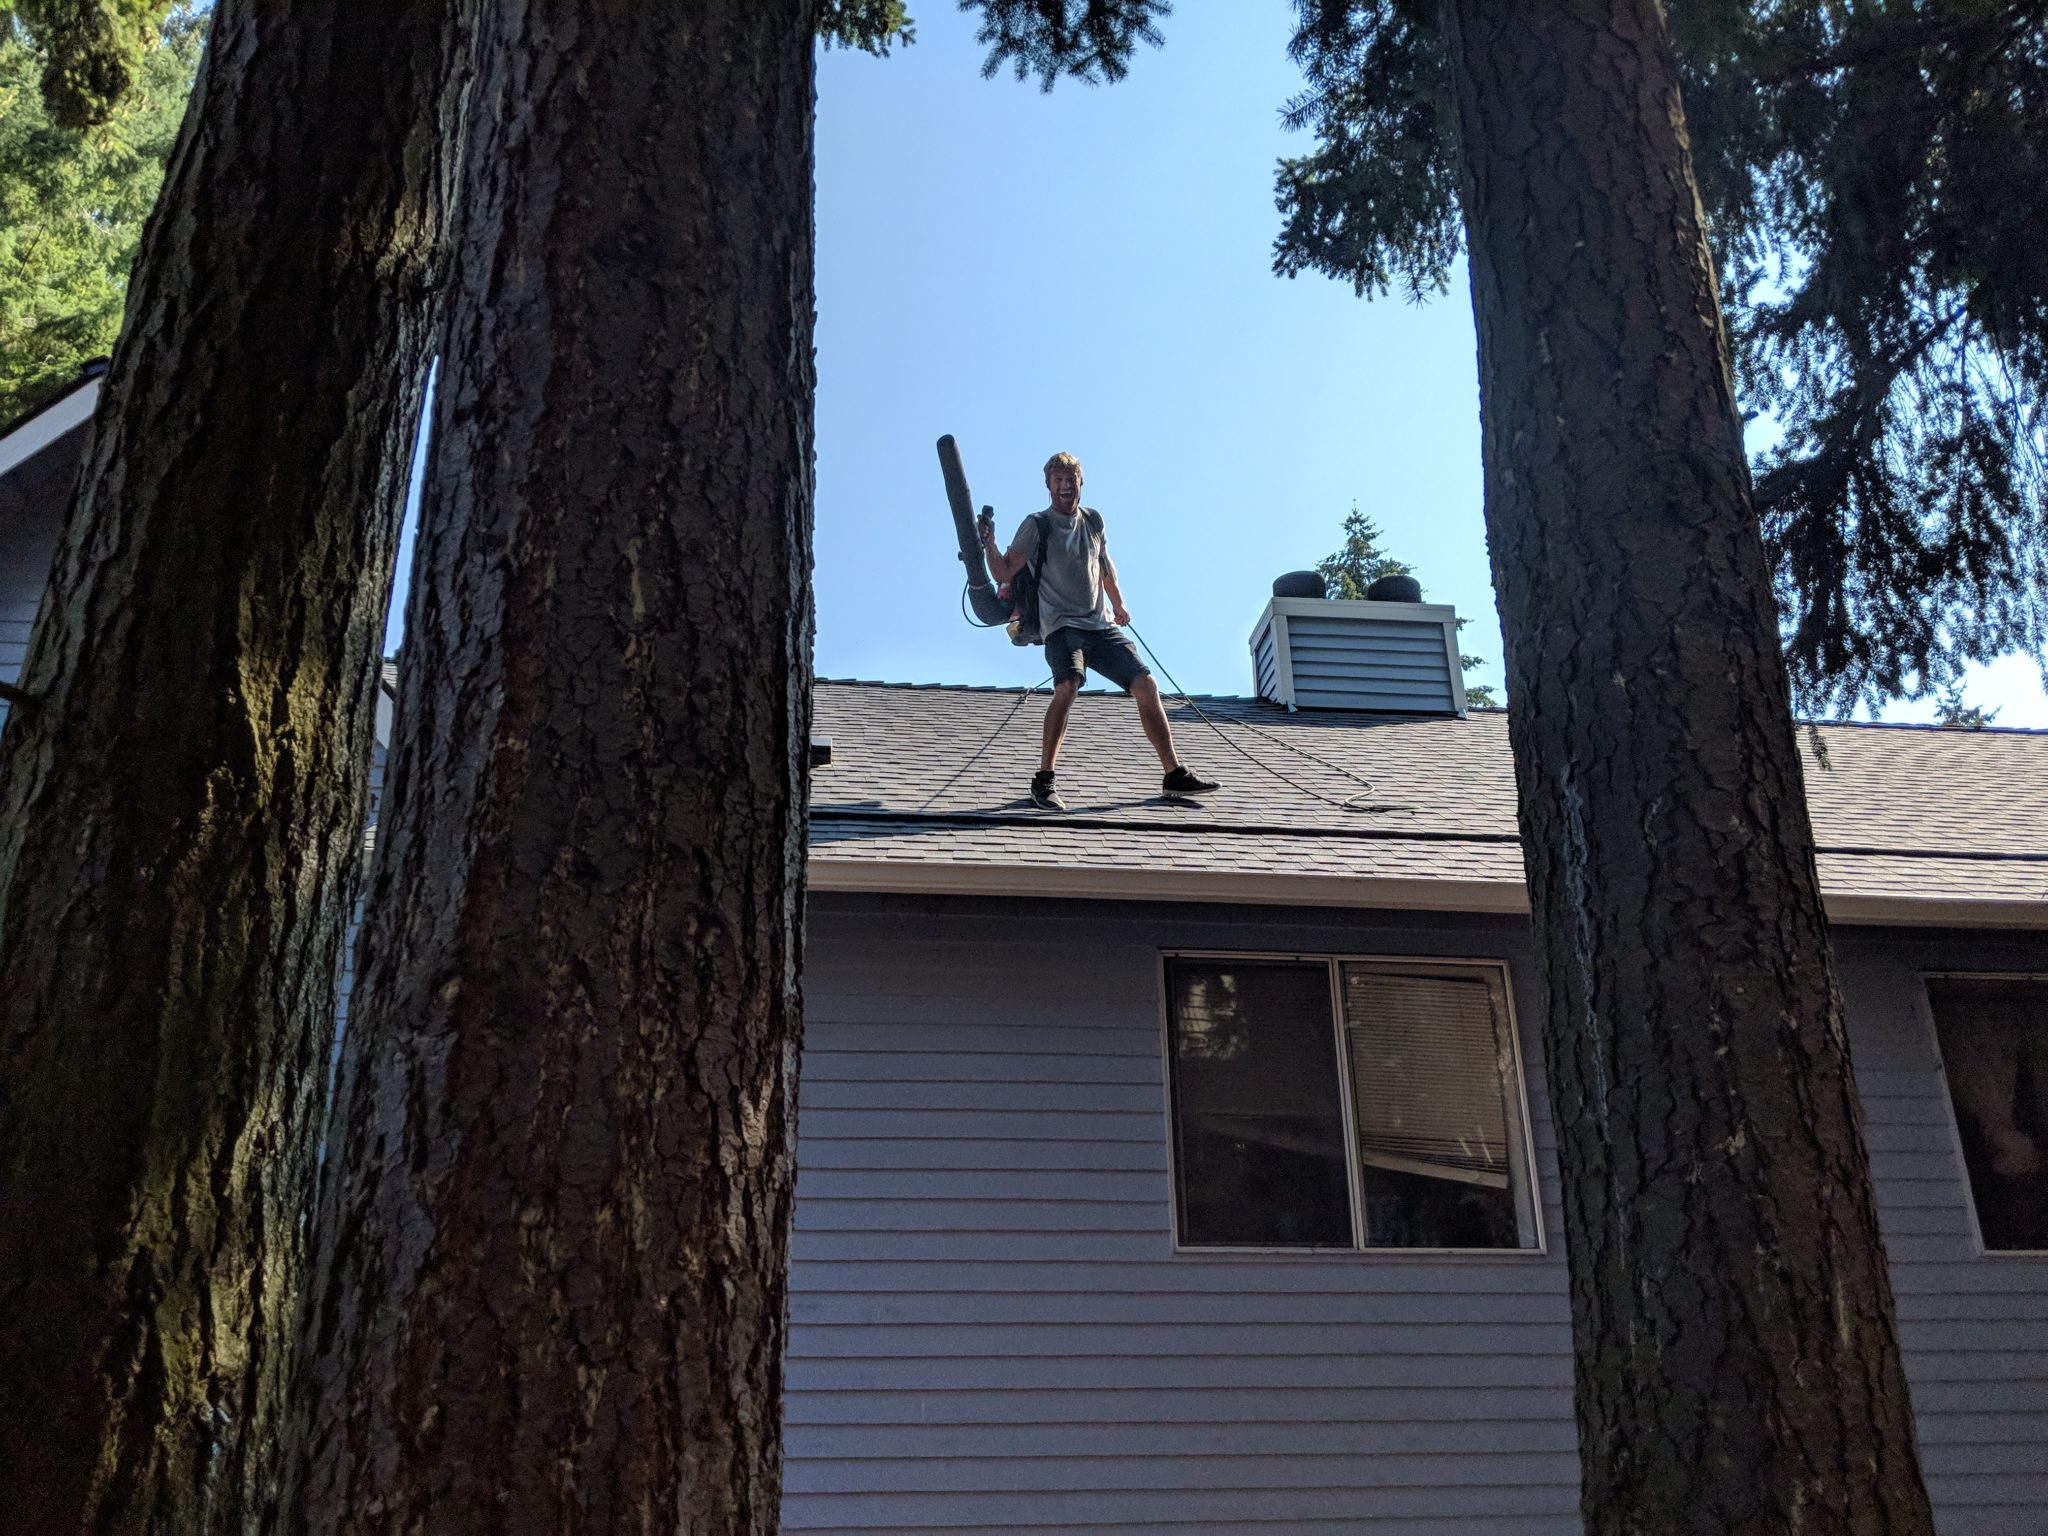 window washing workers compensation